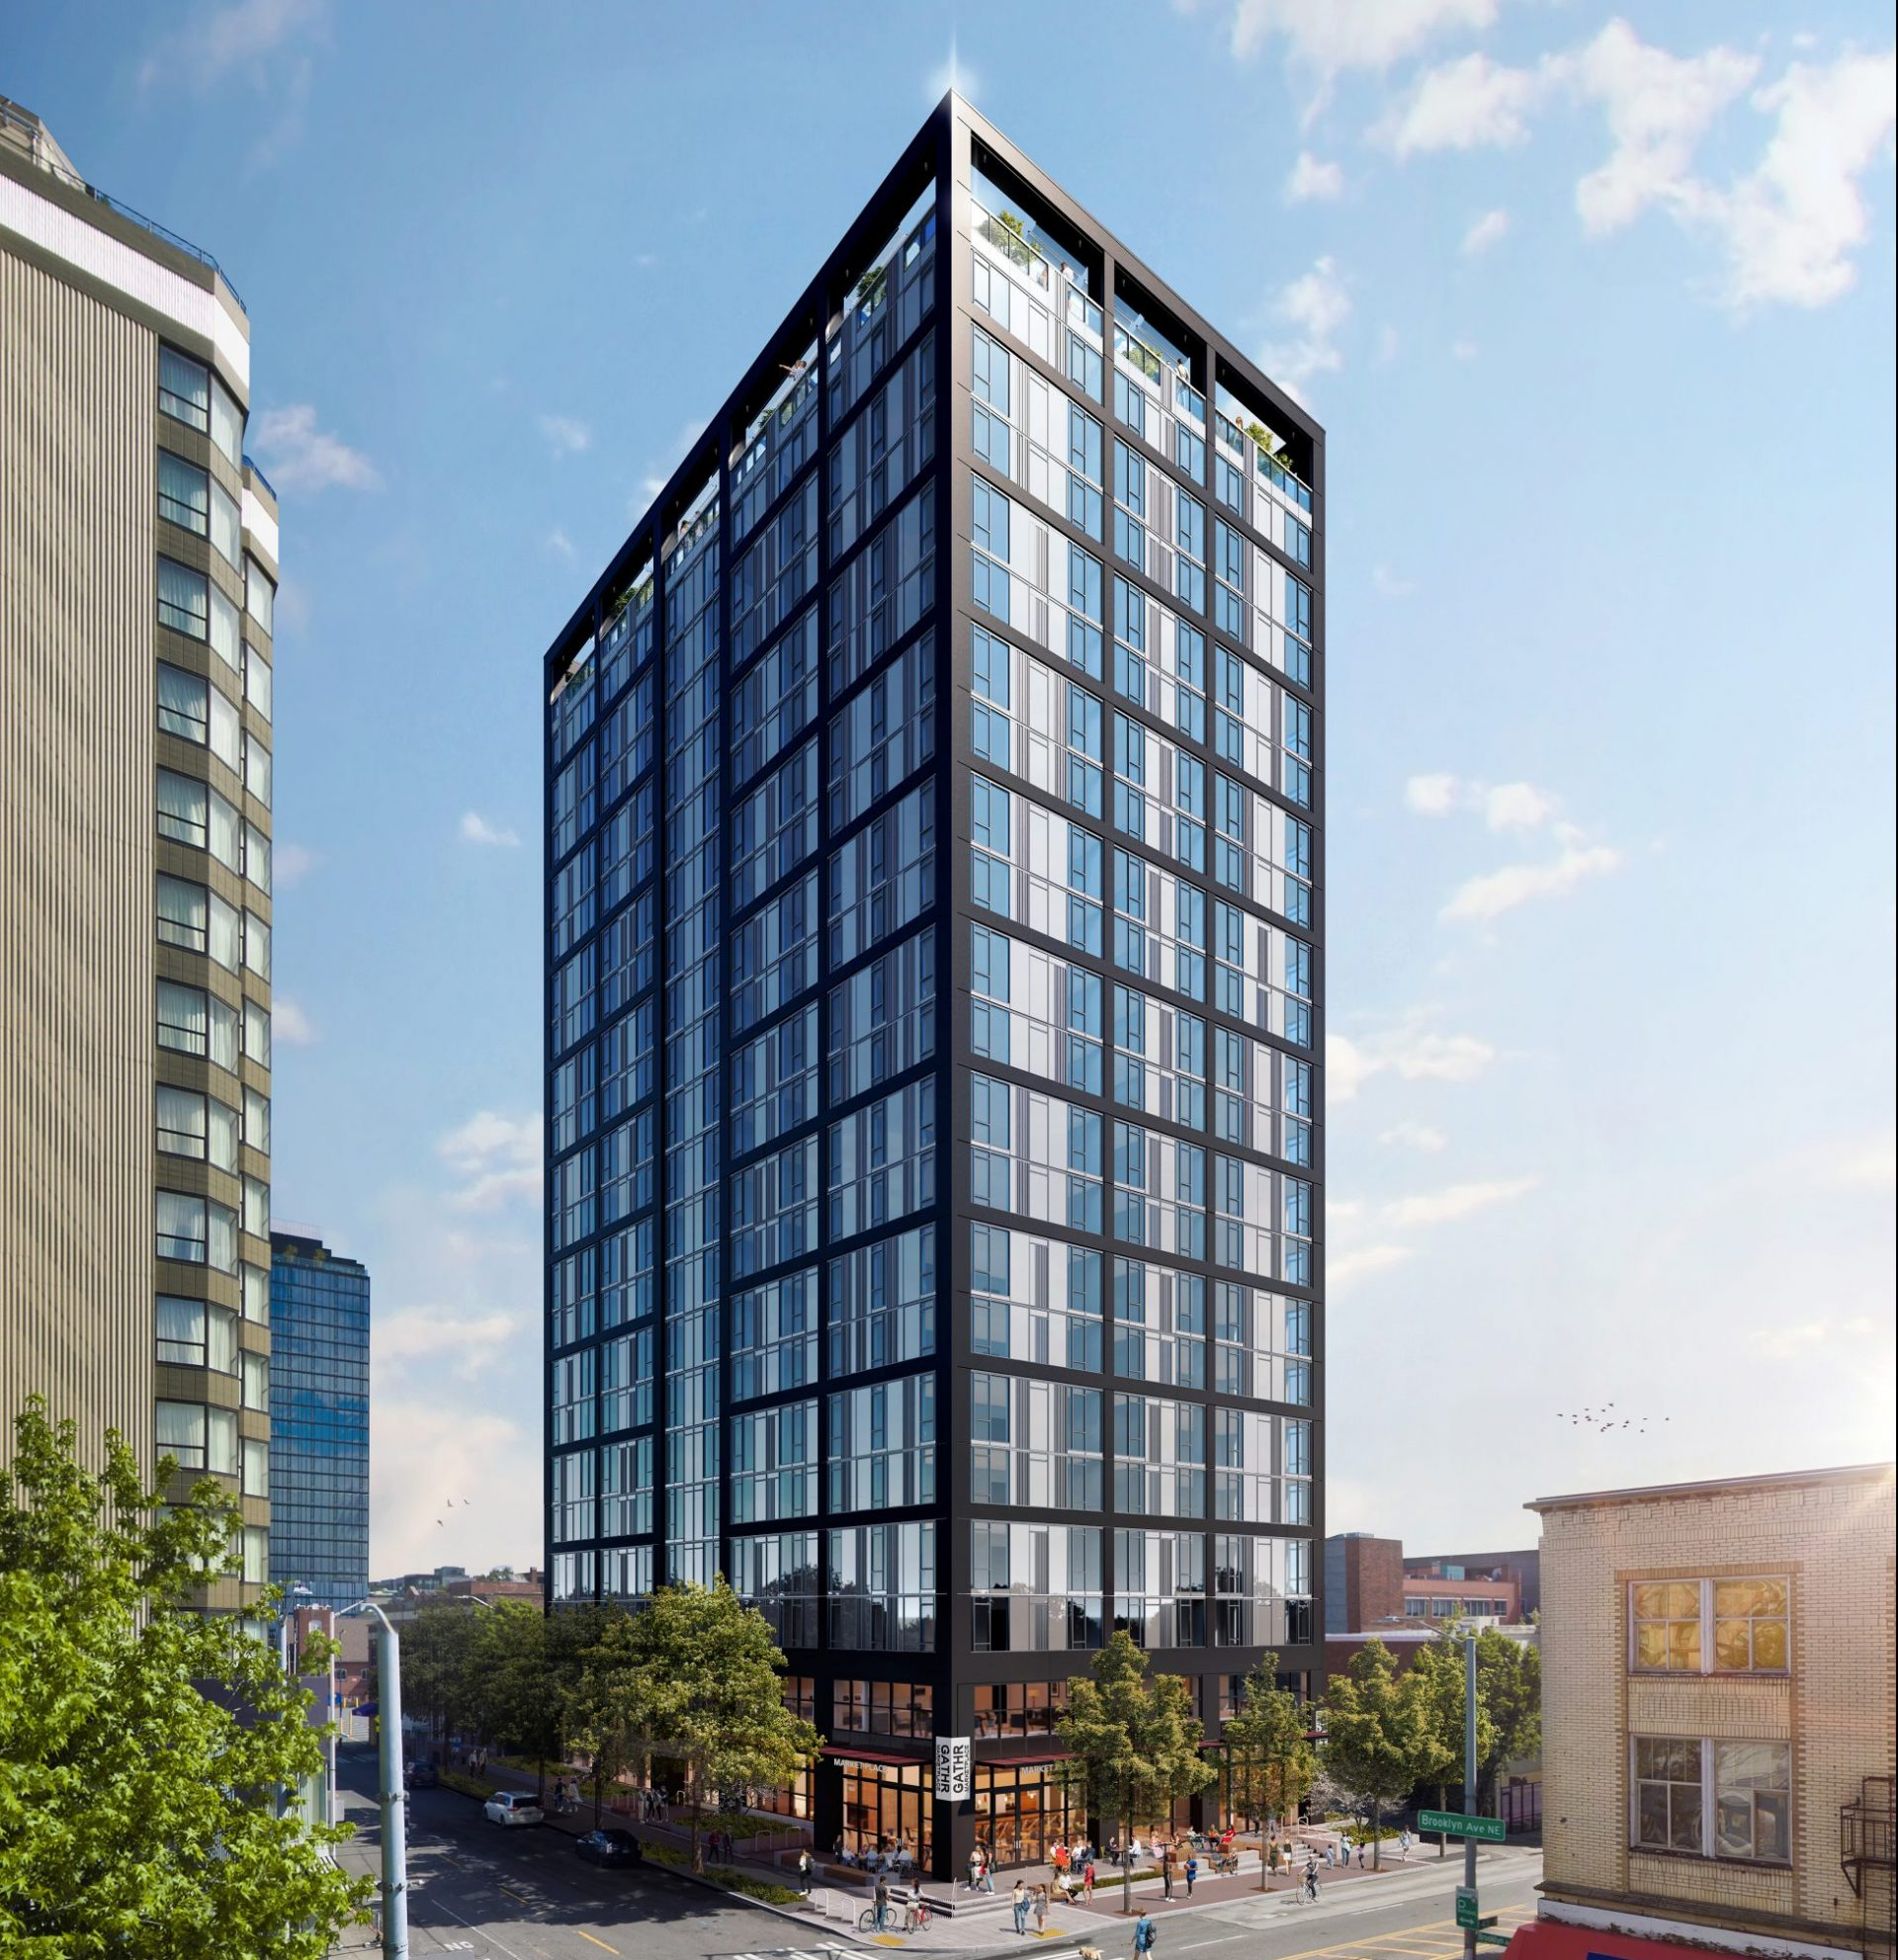 1300 NE 45th Street tower rendering